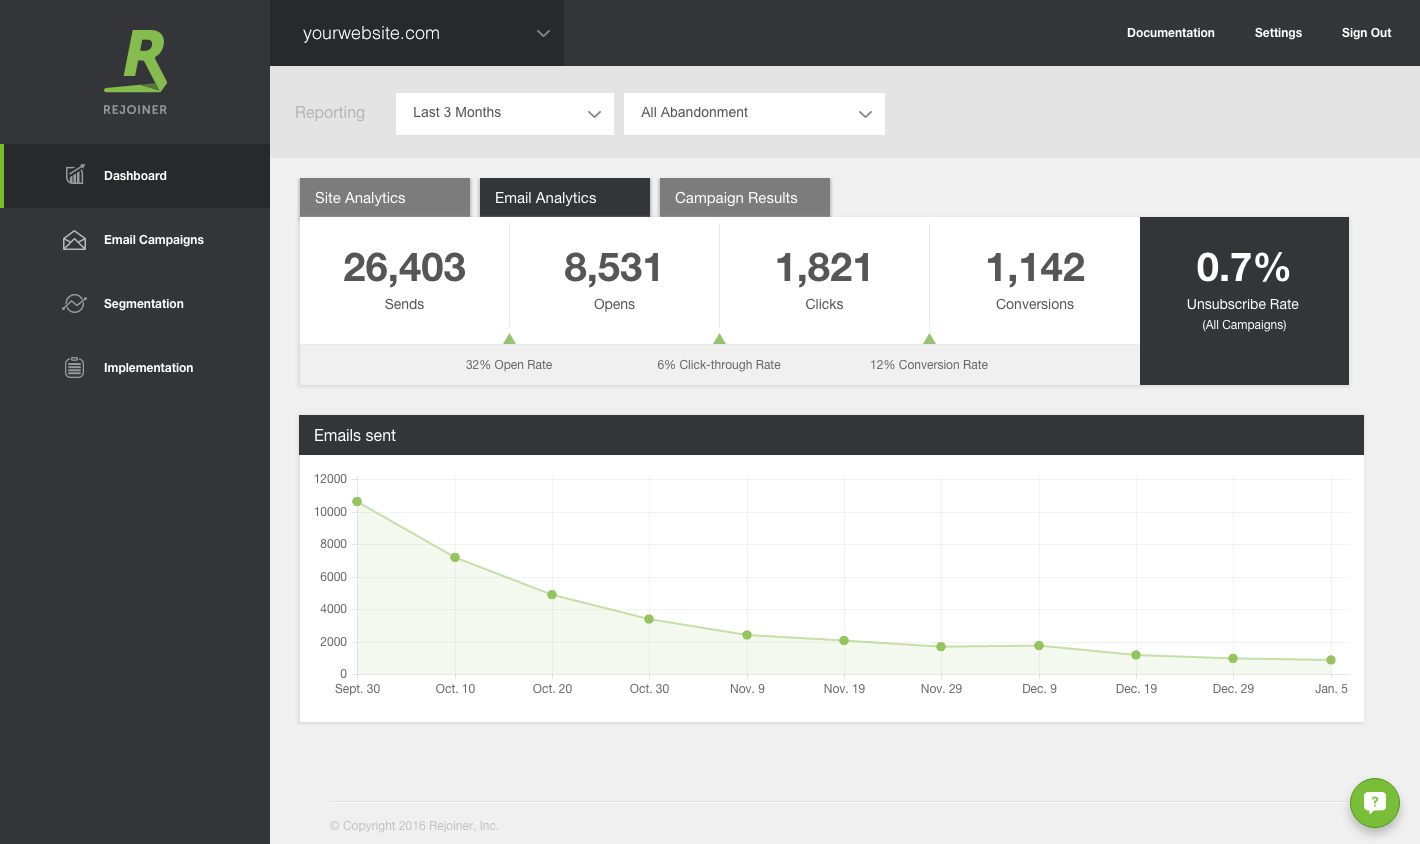 Rejoiner's email analytics shows you sends, ioens, clicks, conversions and unsubscribe rate